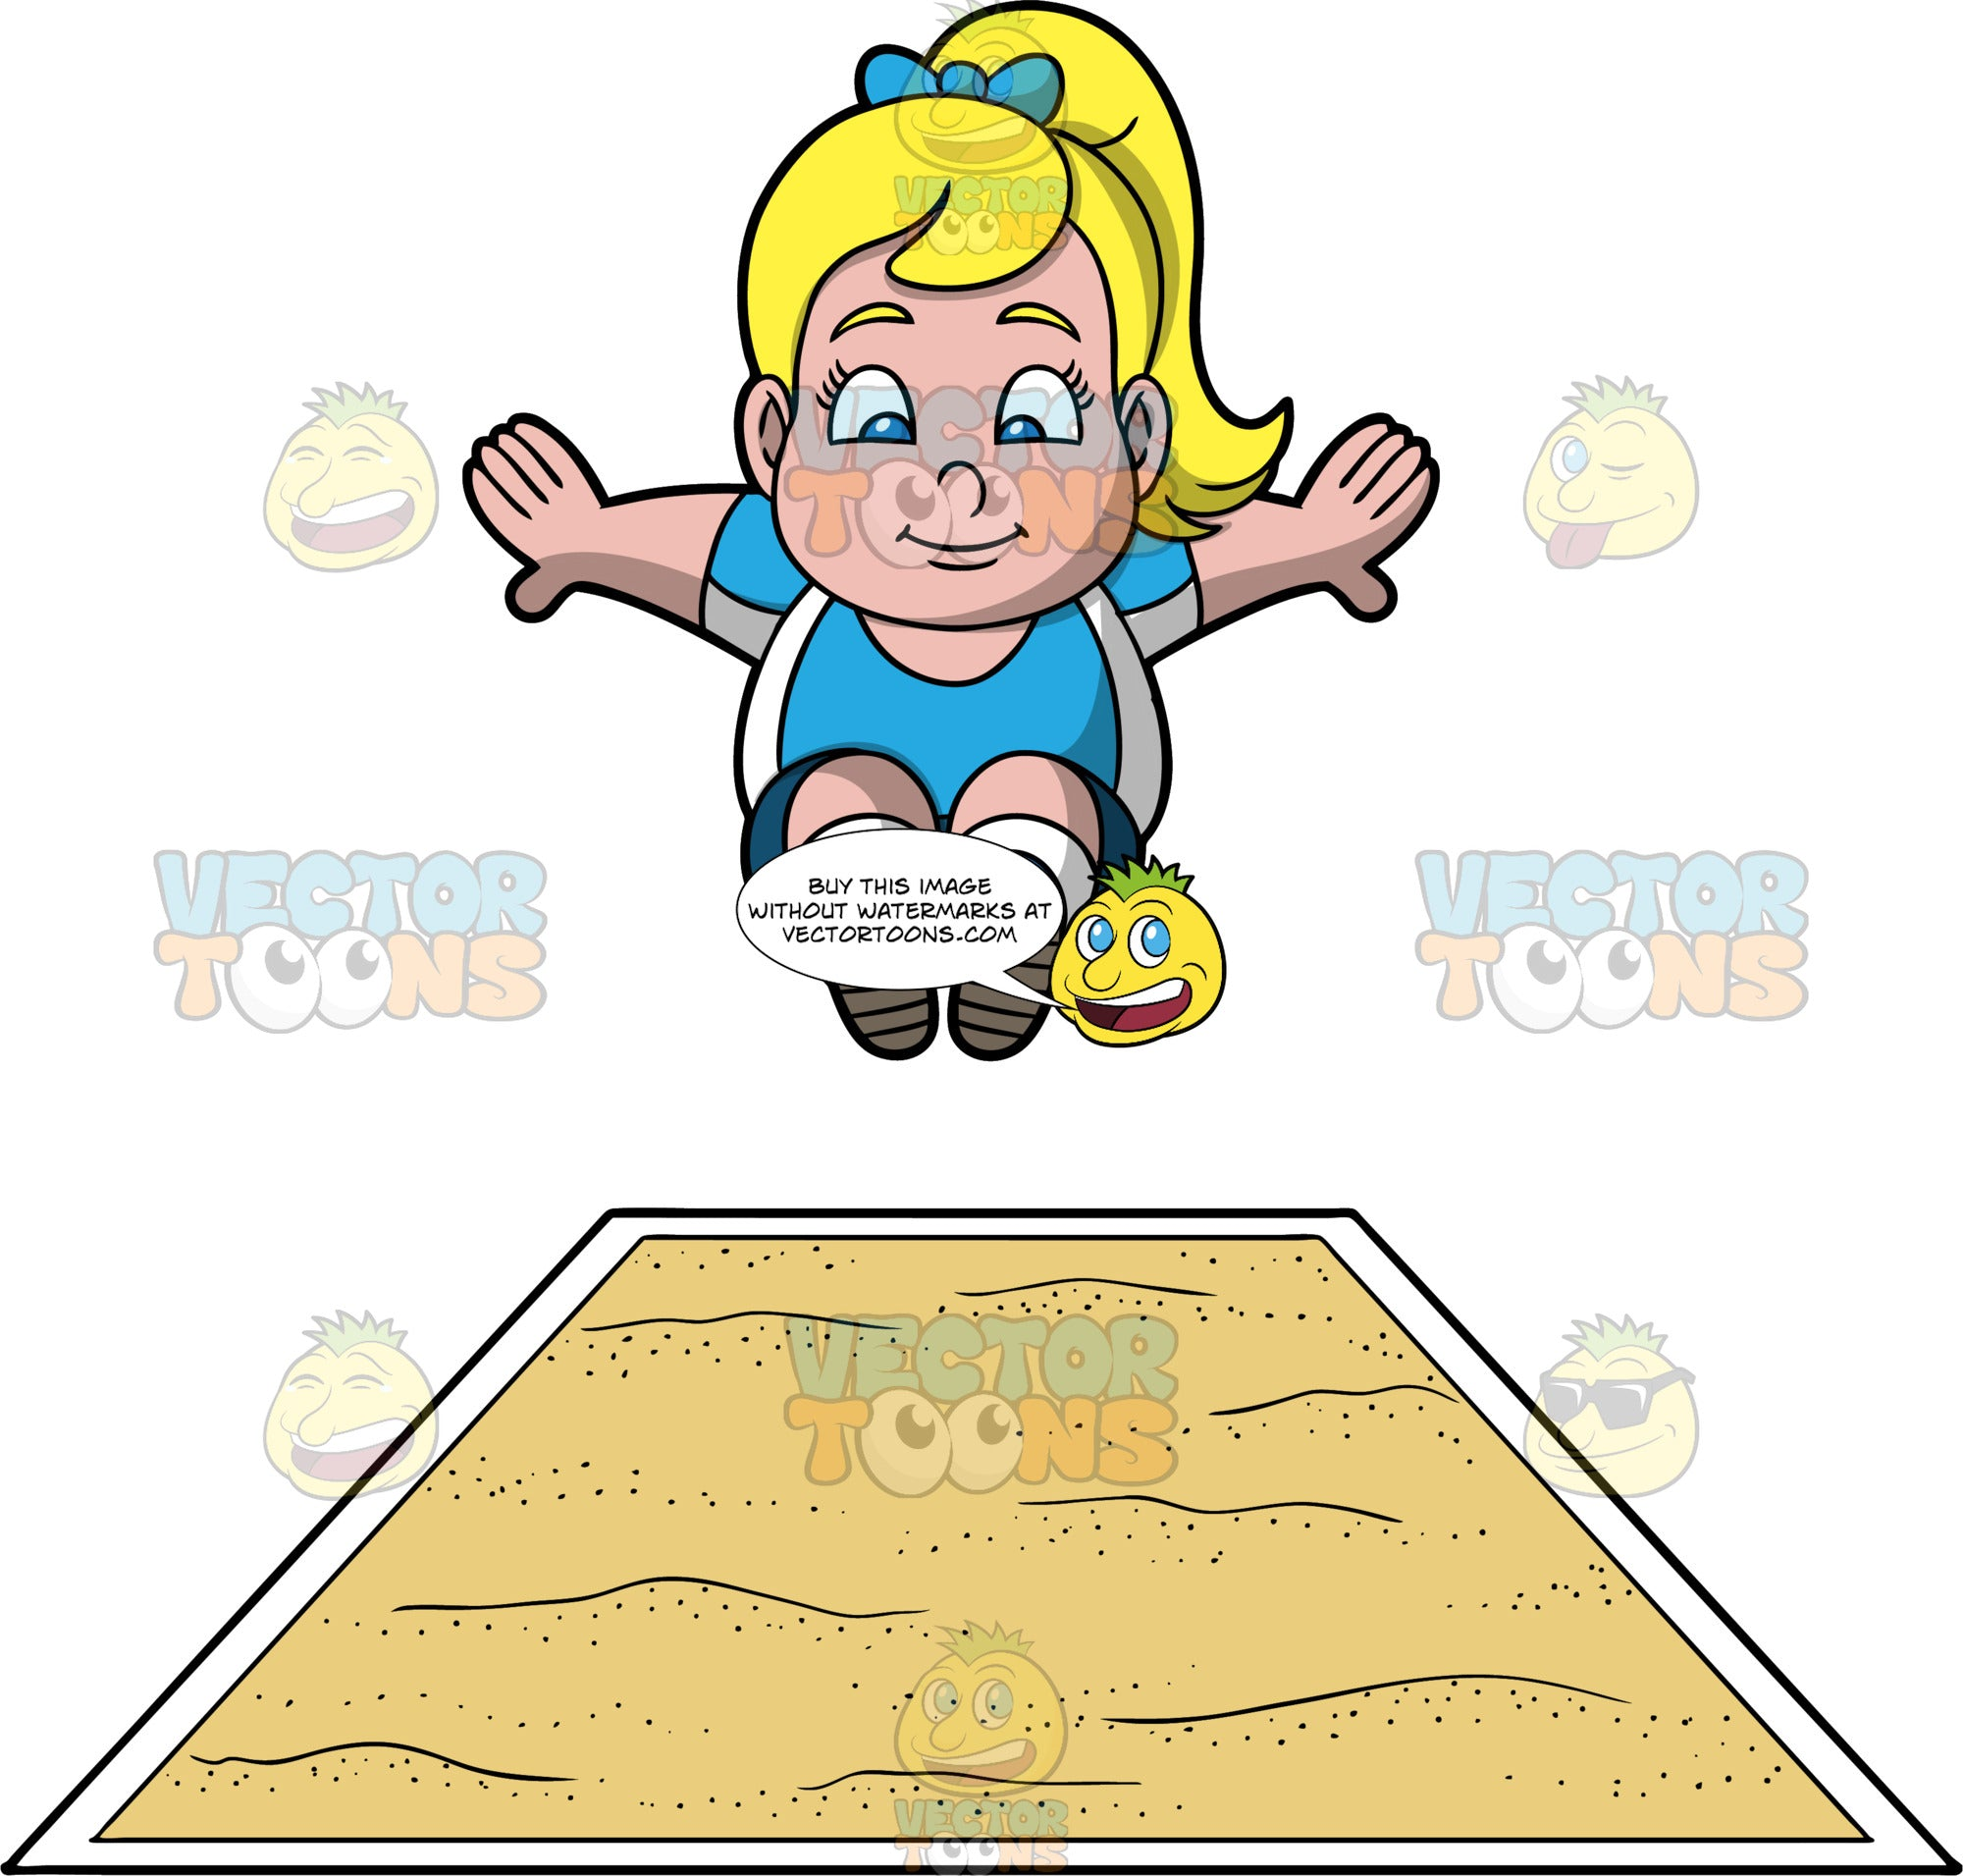 Young Pat Preparing To Land In A Long Jump Pit. A chubby blond girl wearing blue shorts, and a blue and white shirt, jumps and prepares to land in a long jump pit